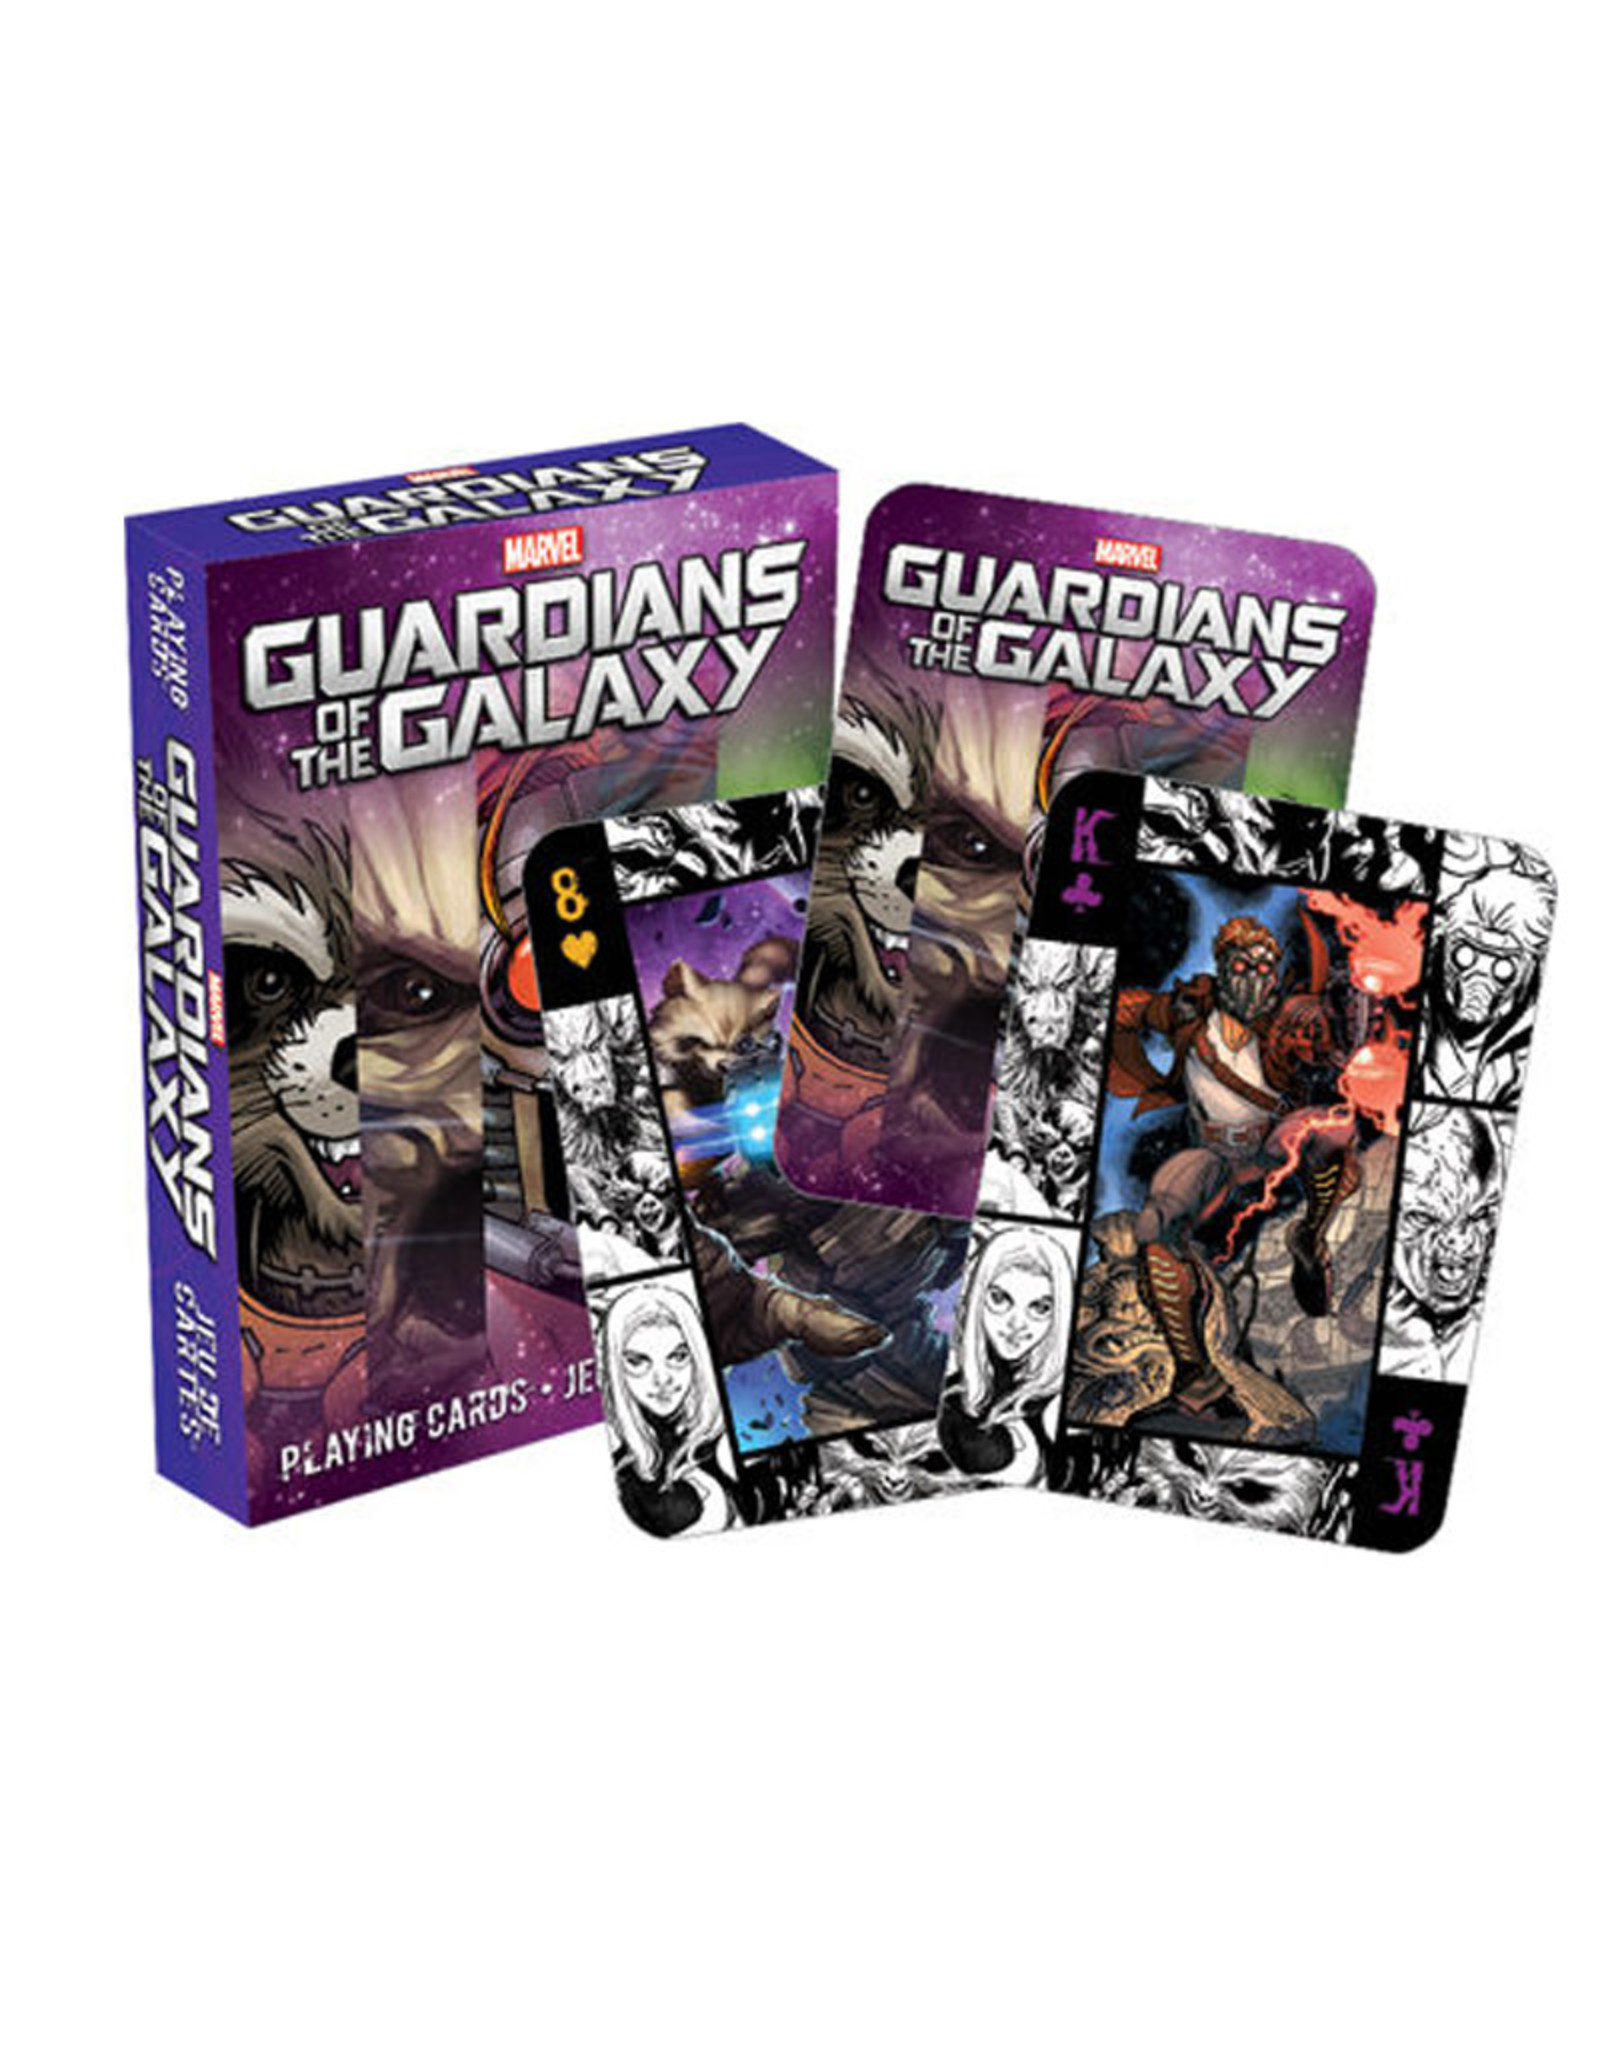 Marvel Marvel ( Playing cards ) Guardians of the Galaxy